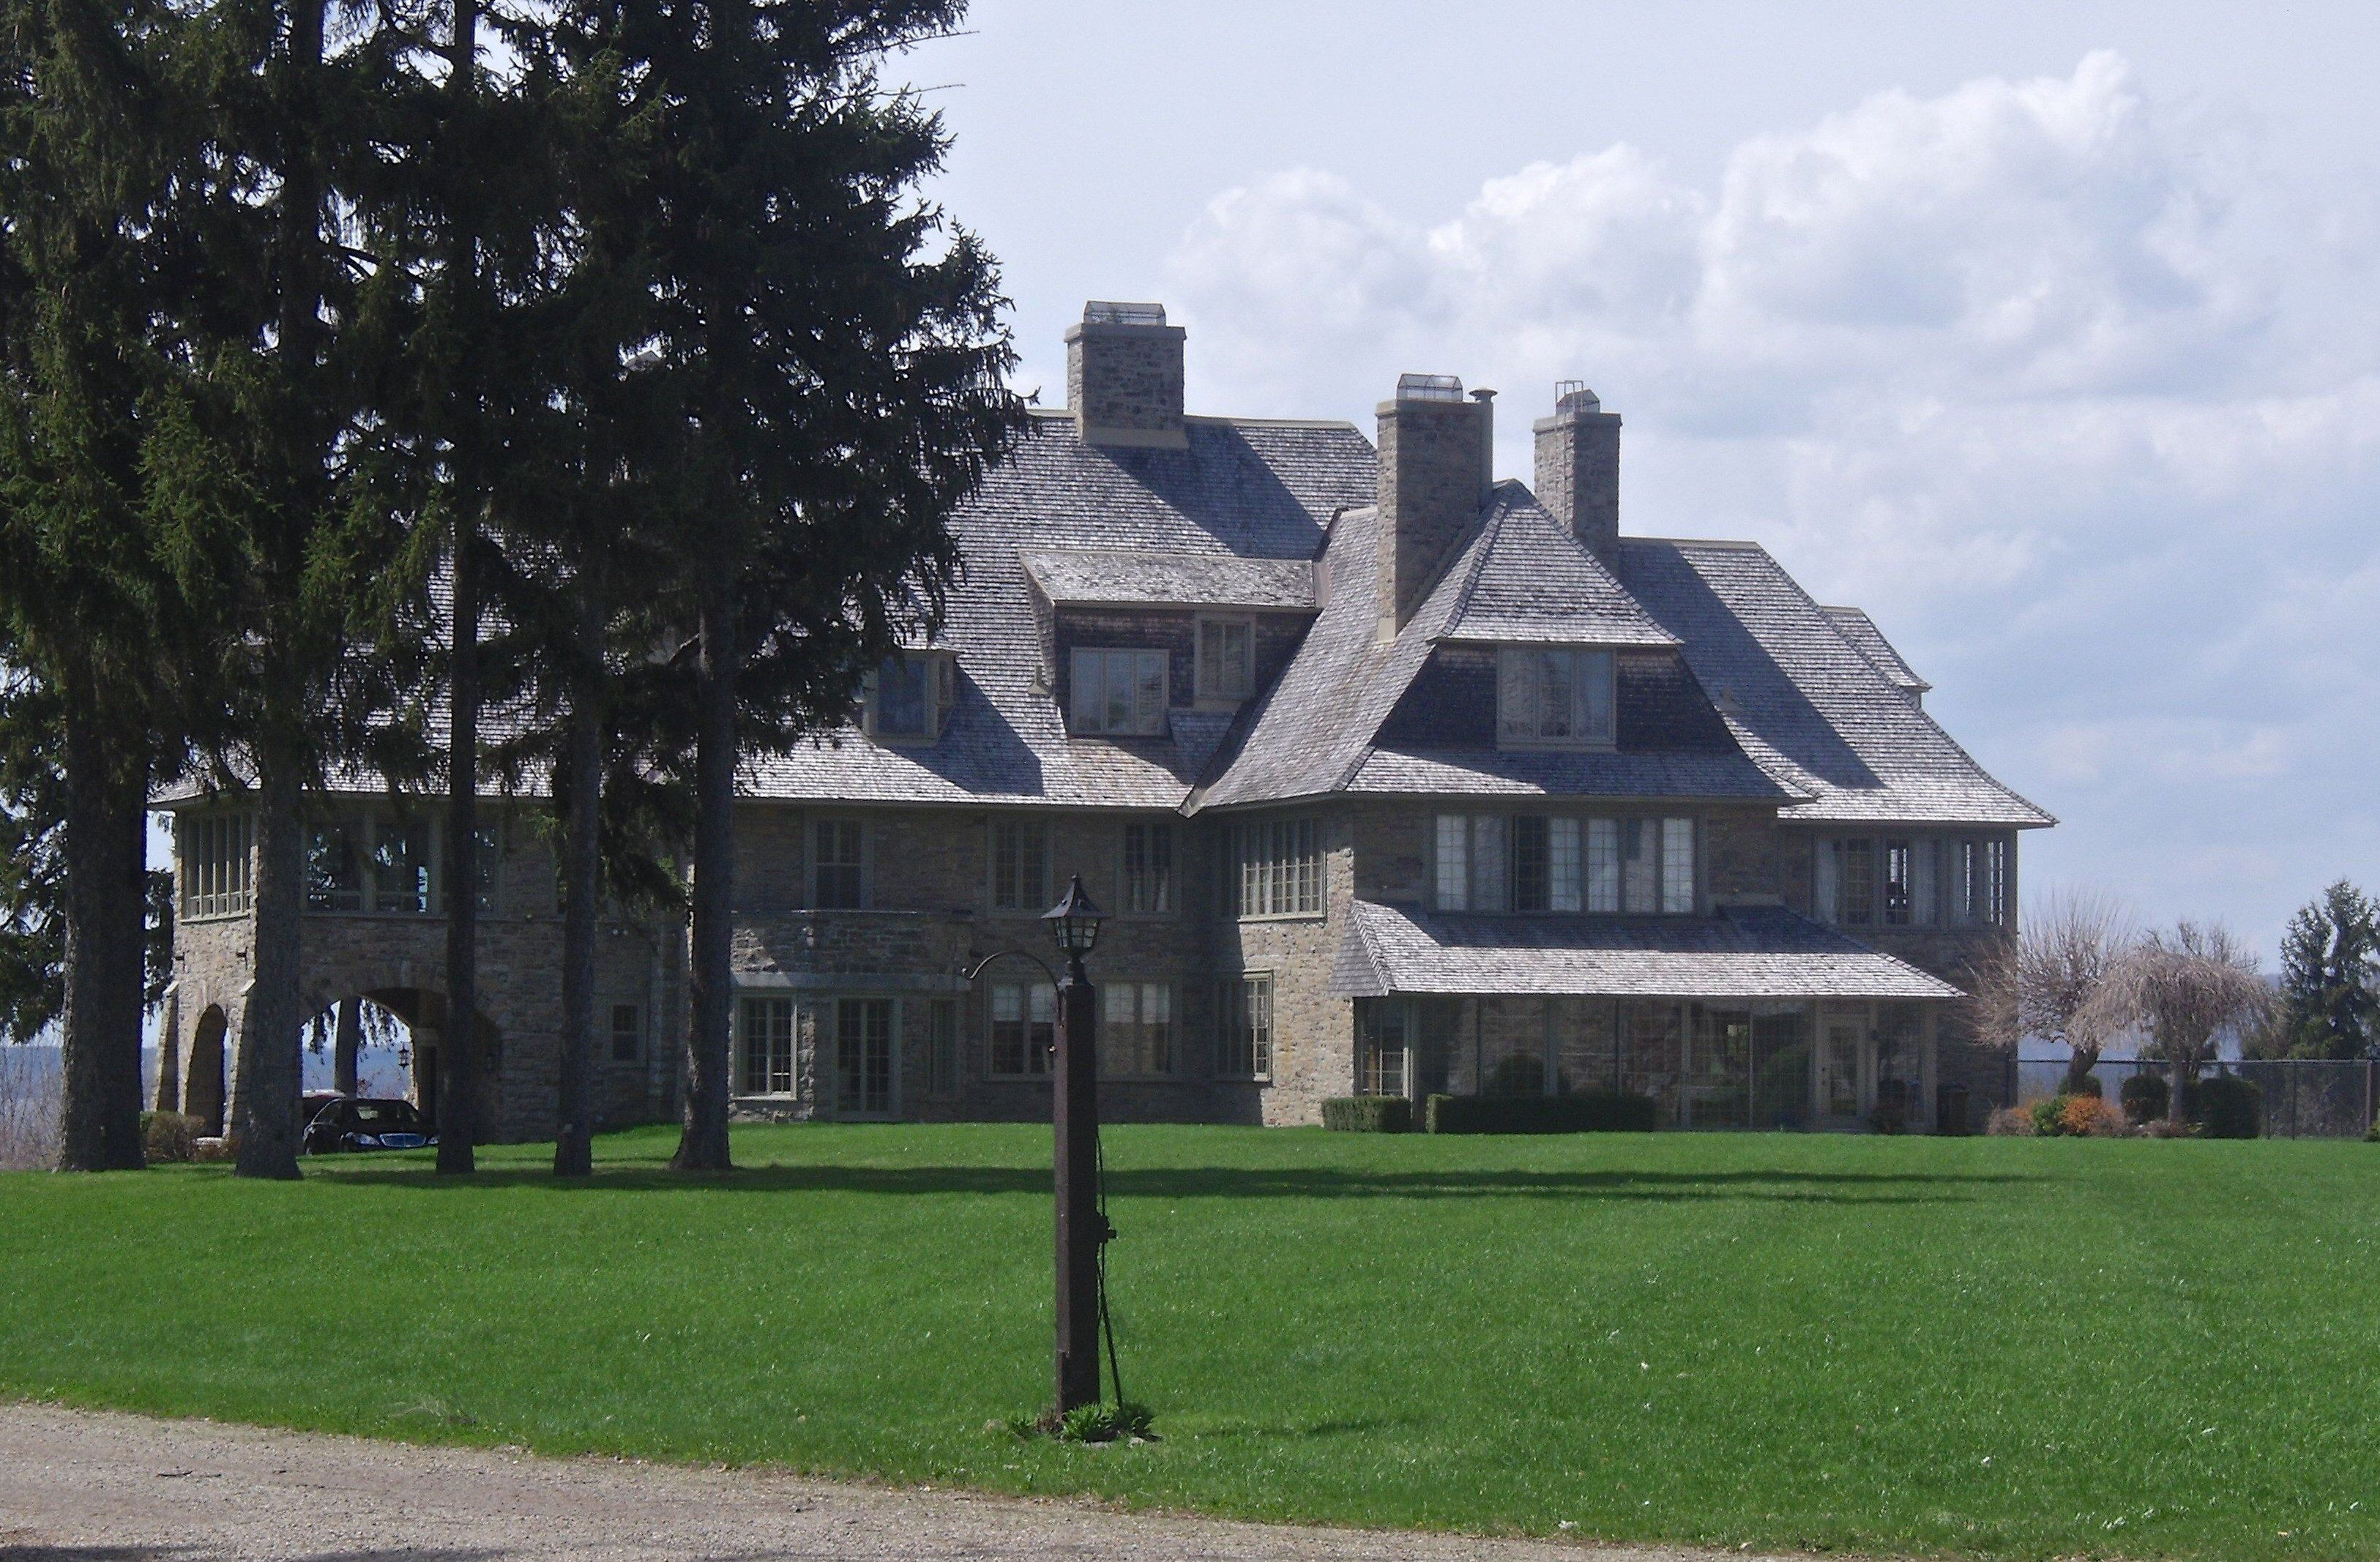 Stone shingle estate, shed dormers, multiple chimneys, gables, car port, set back from road overlooking water